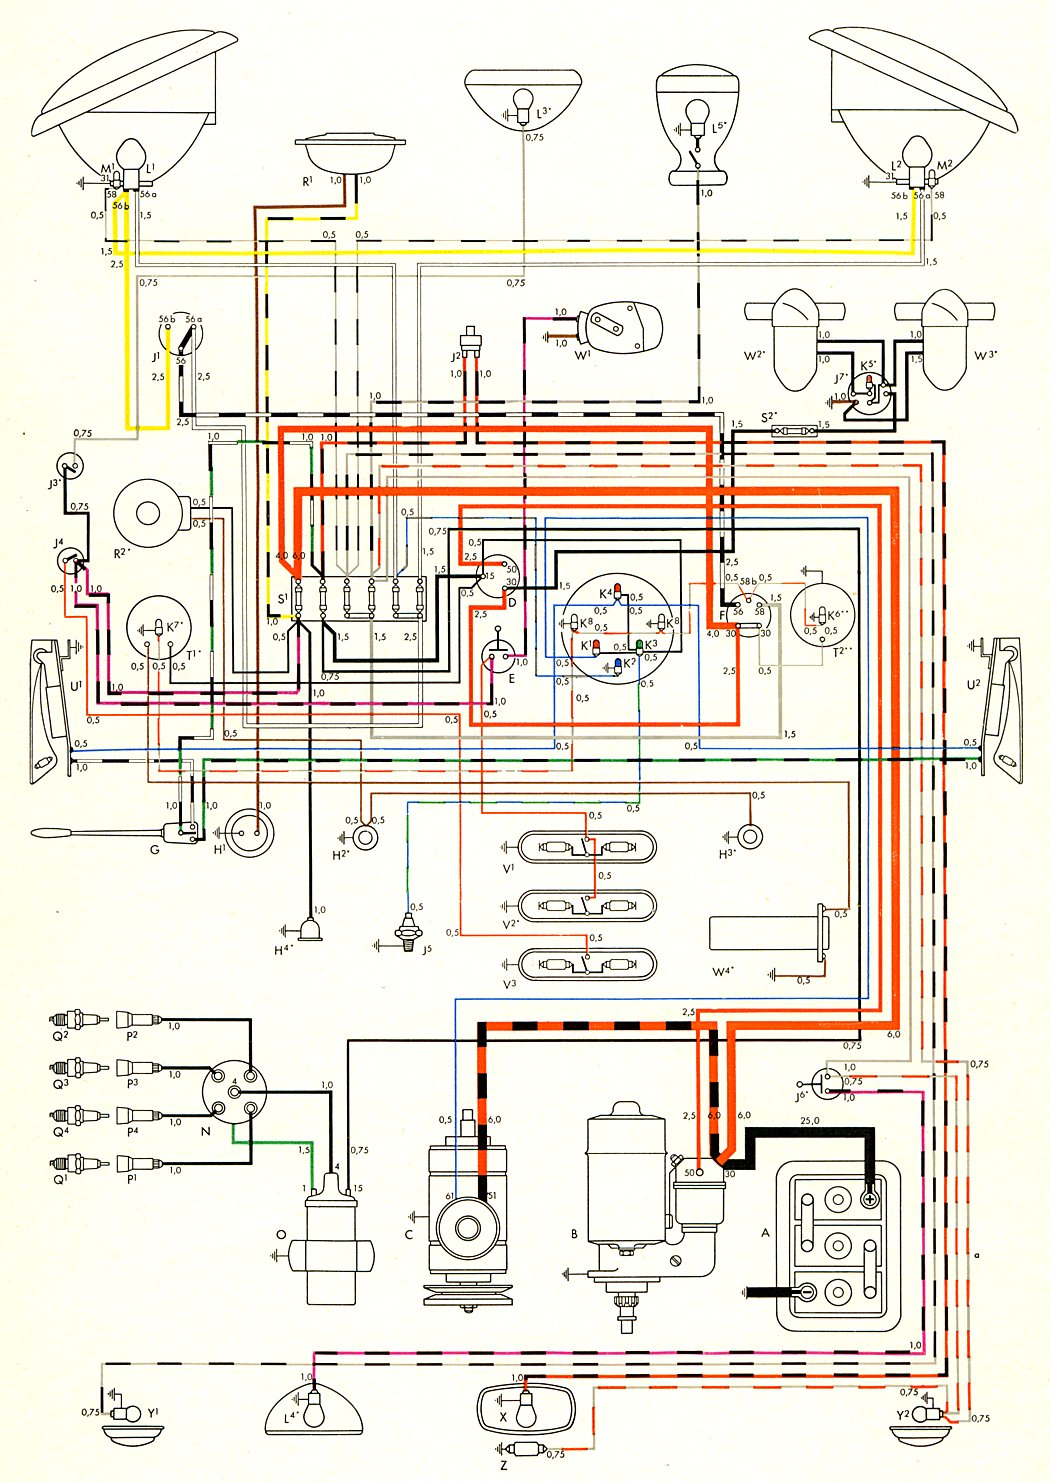 1968 vw bus wiring diagram auto electrical wiring diagram \u2022 vw kit car wiring diagram thesamba com type 2 wiring diagrams rh thesamba com 1968 vw beetle wire harness 1970 vw bus wiring diagram